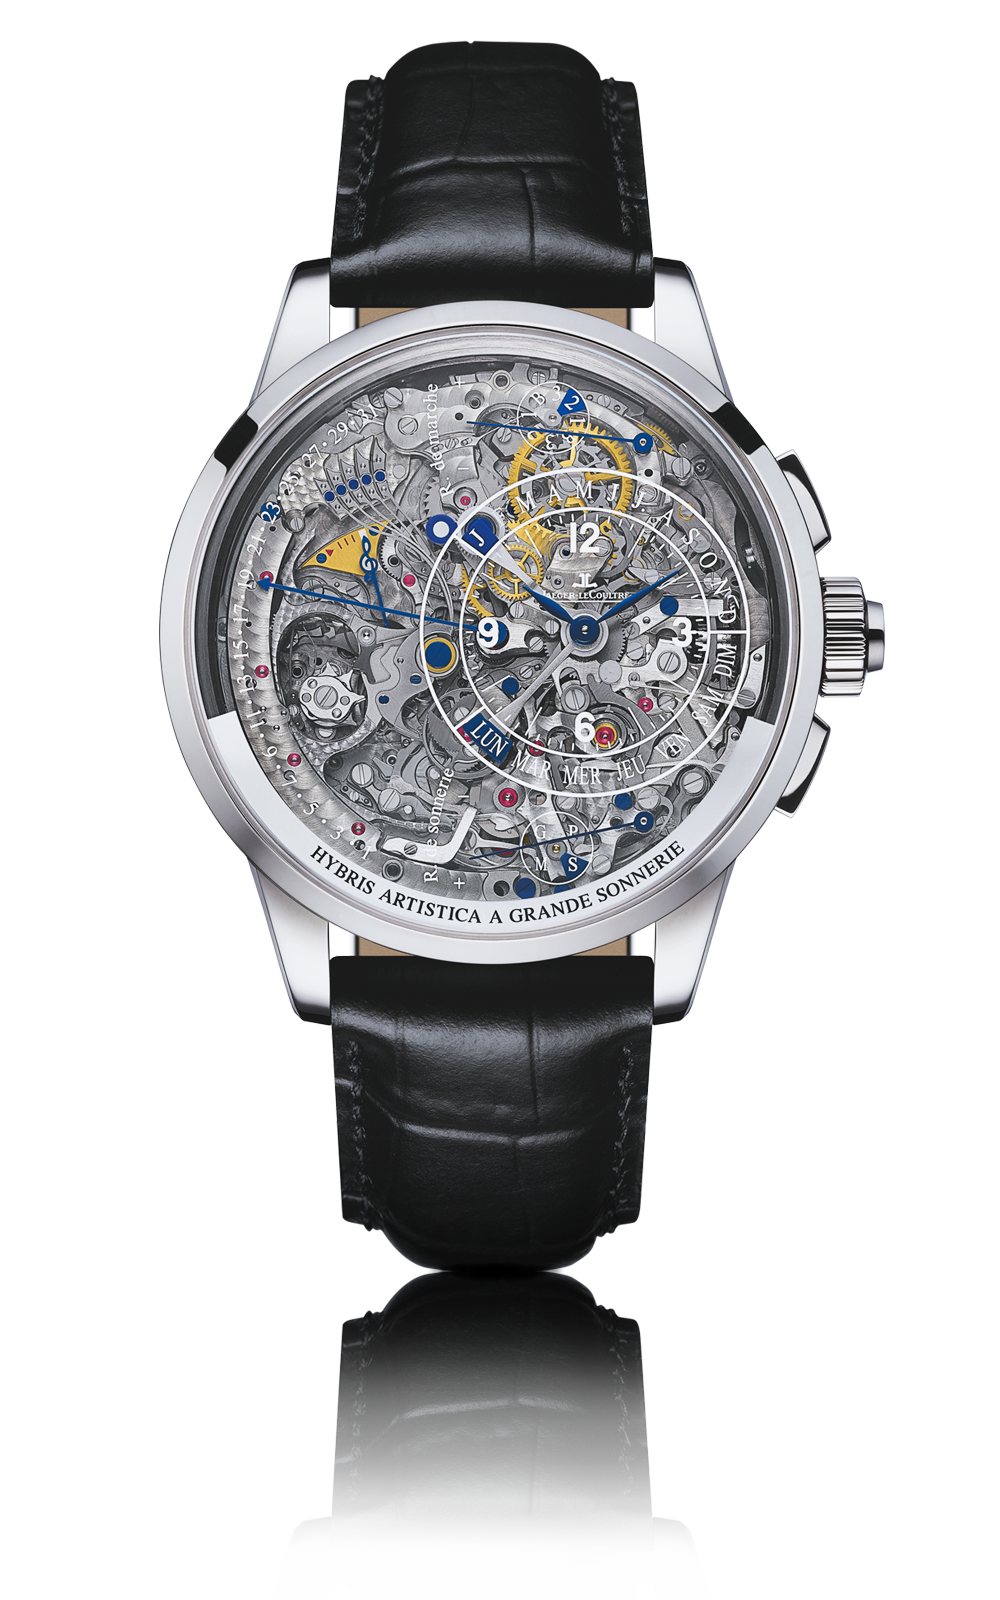 Amazing watchmaking jaeger lecoultre watches hybris artistica atimelyperspective for Lecoultre watches